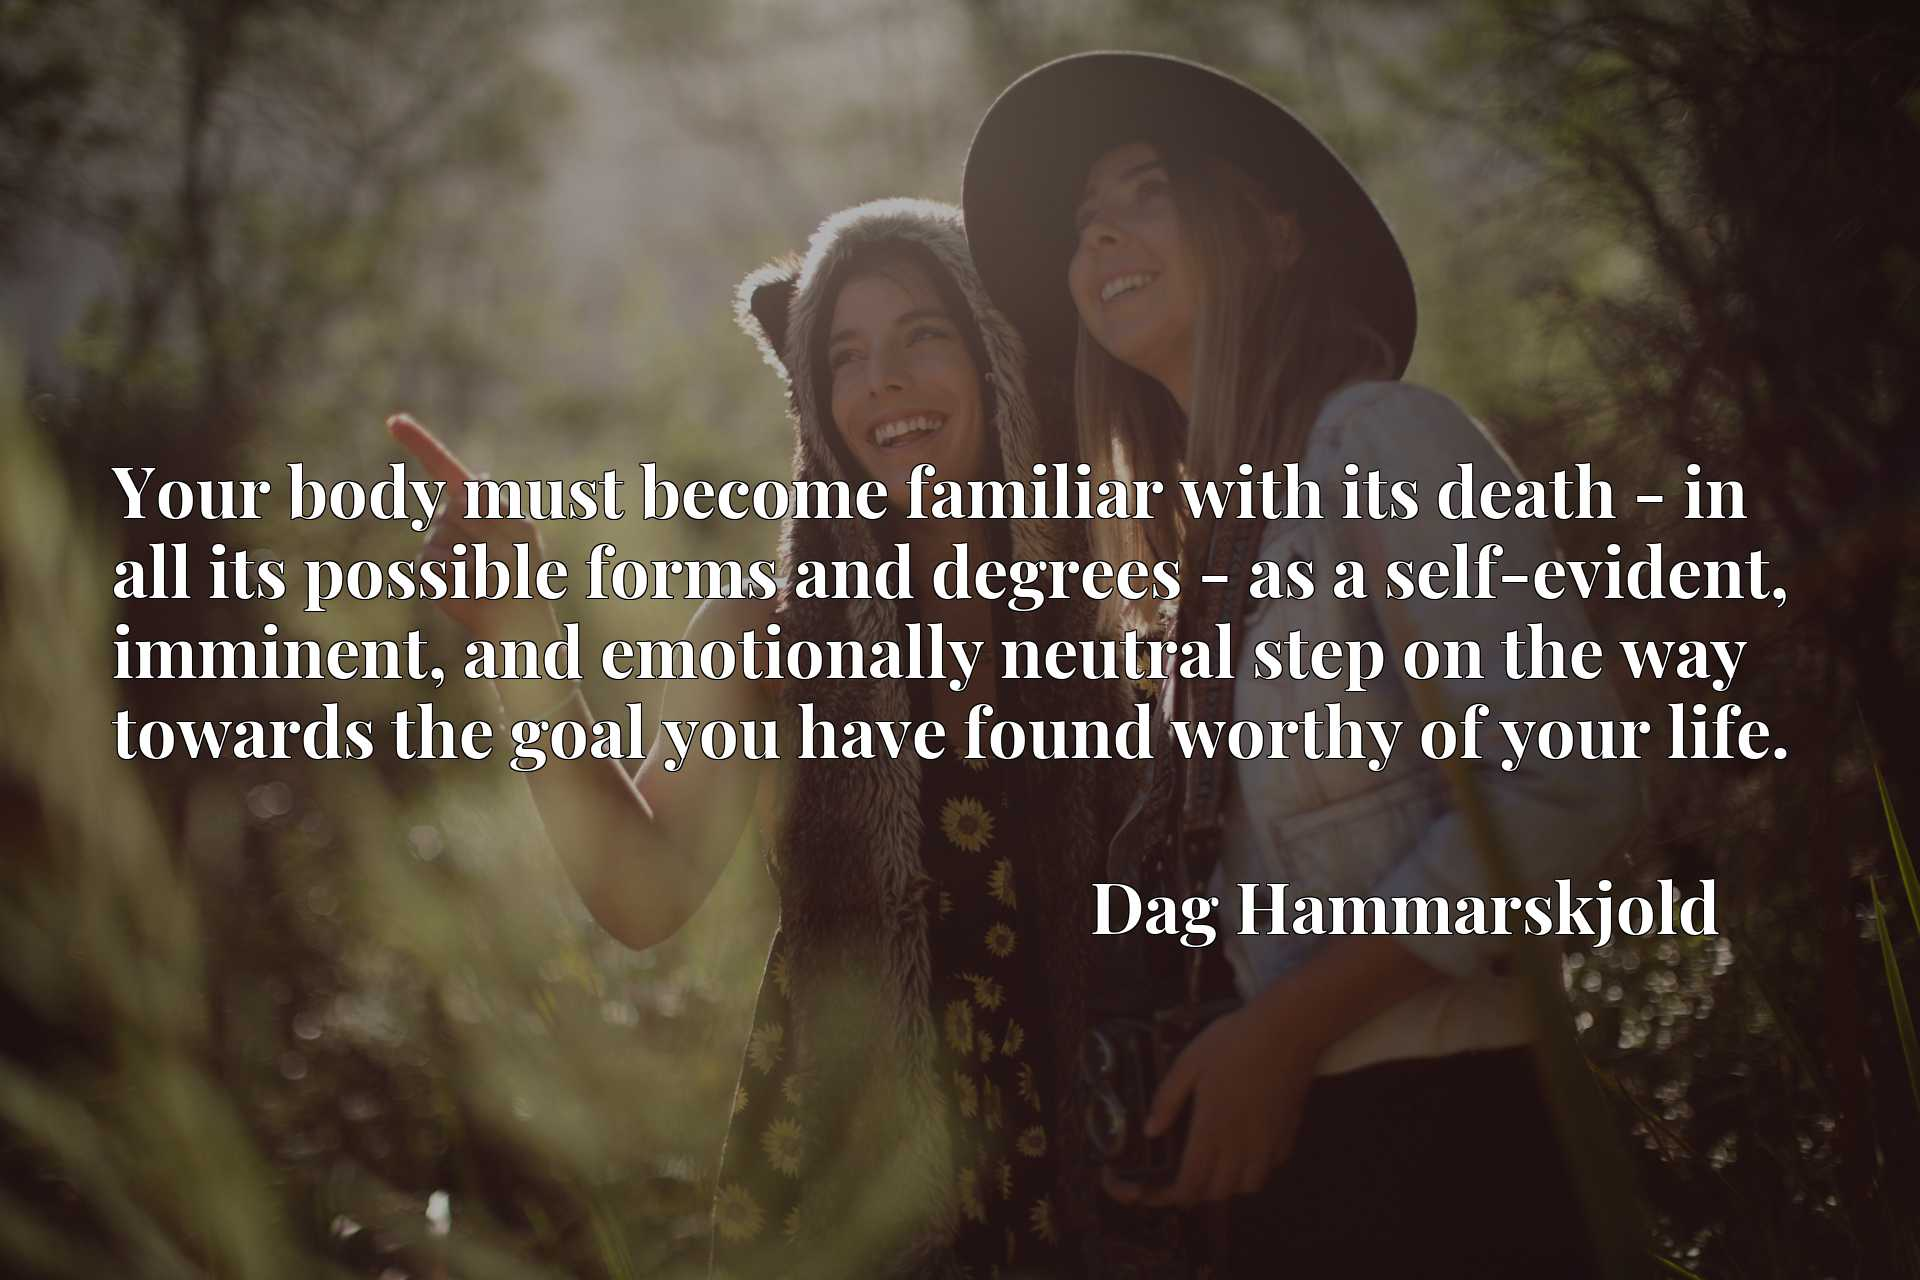 Your body must become familiar with its death - in all its possible forms and degrees - as a self-evident, imminent, and emotionally neutral step on the way towards the goal you have found worthy of your life.